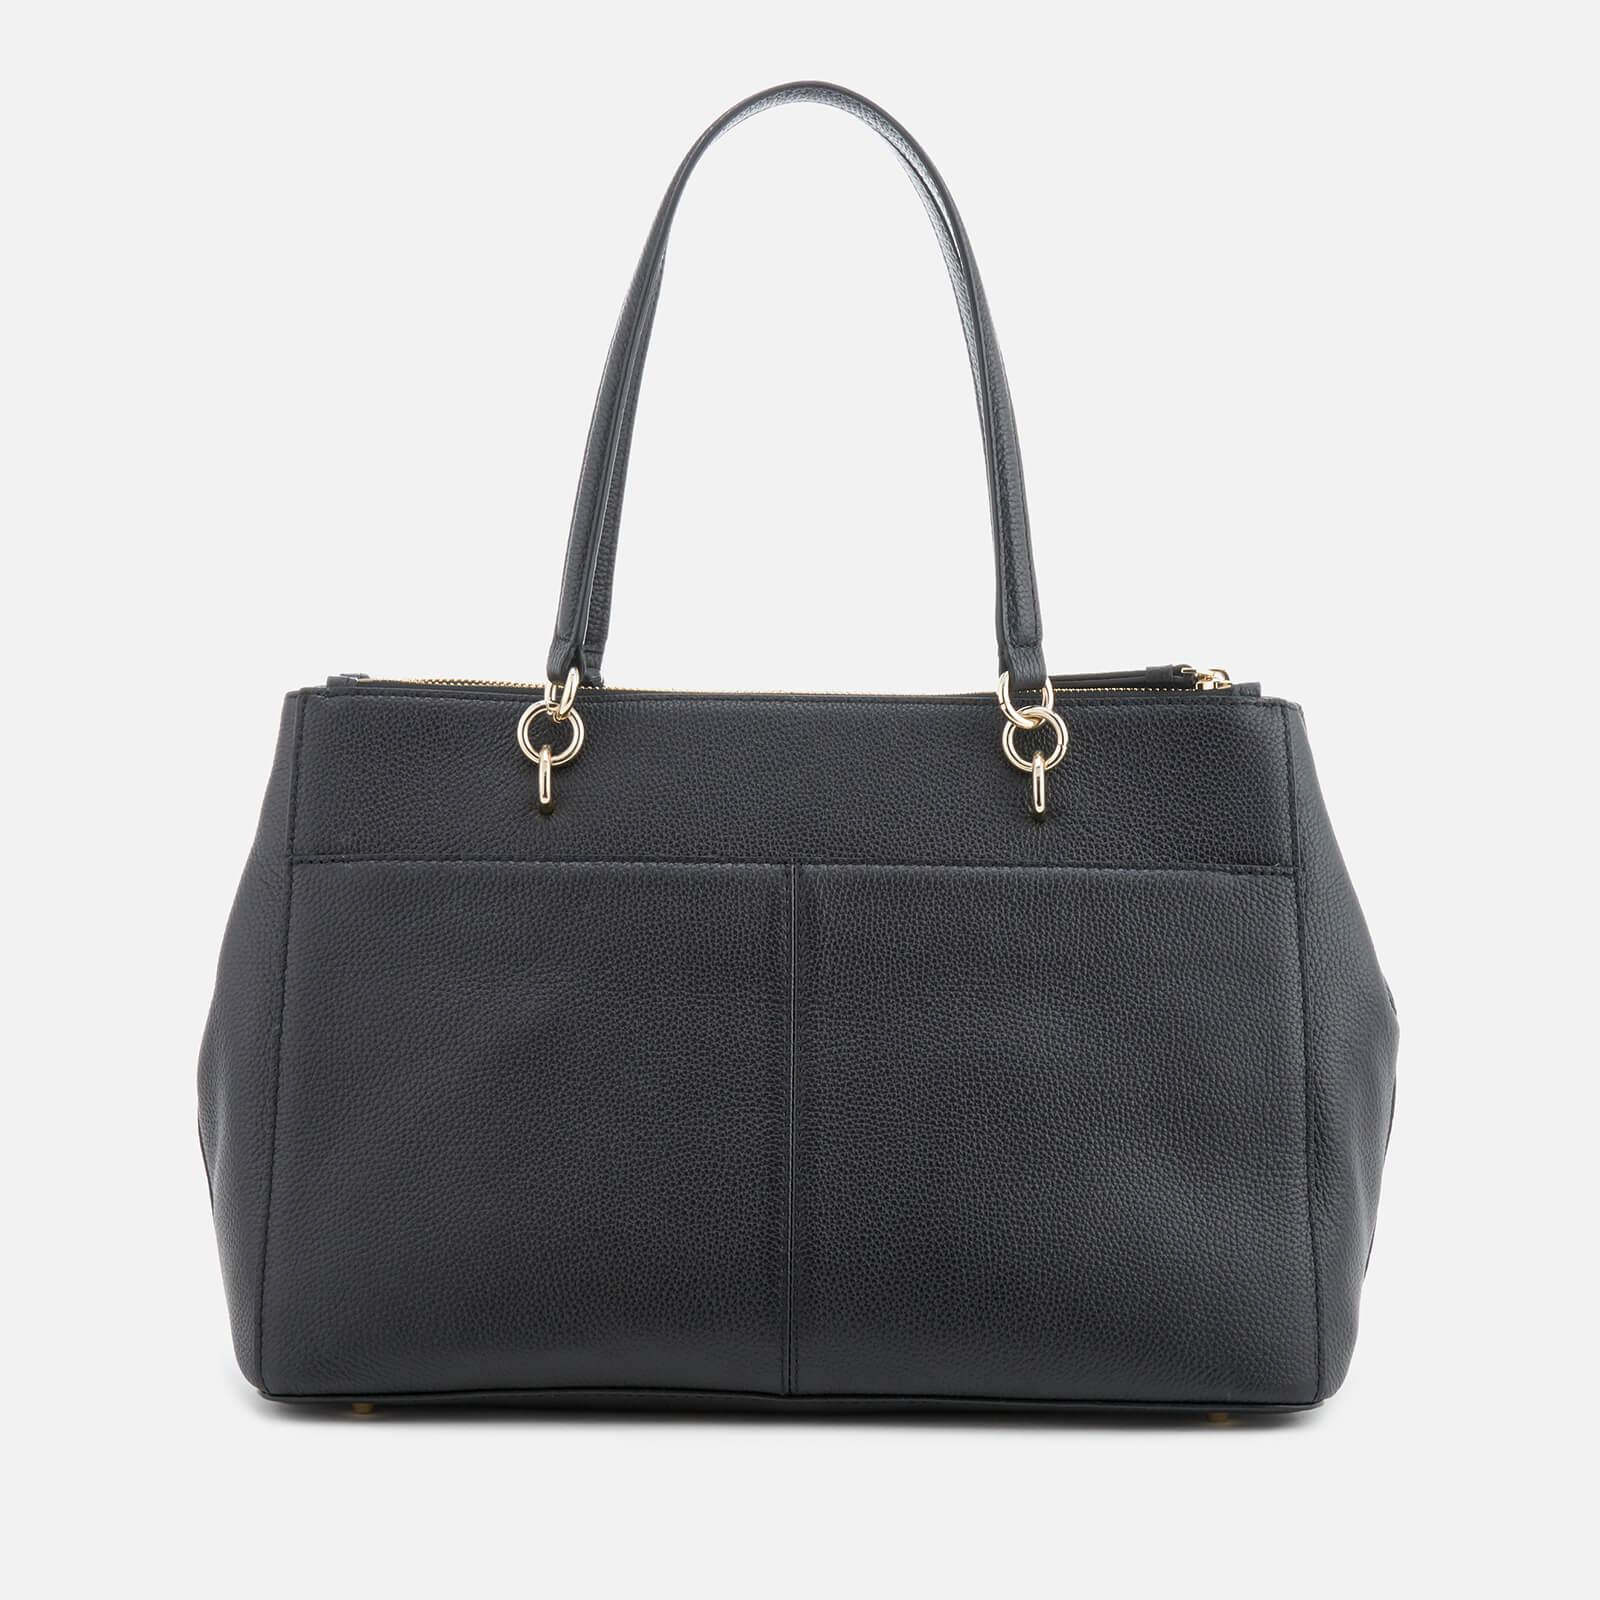 3ecb58deff DKNY Chelsea Pebbled Leather Large Shopper Bag in Black - Lyst